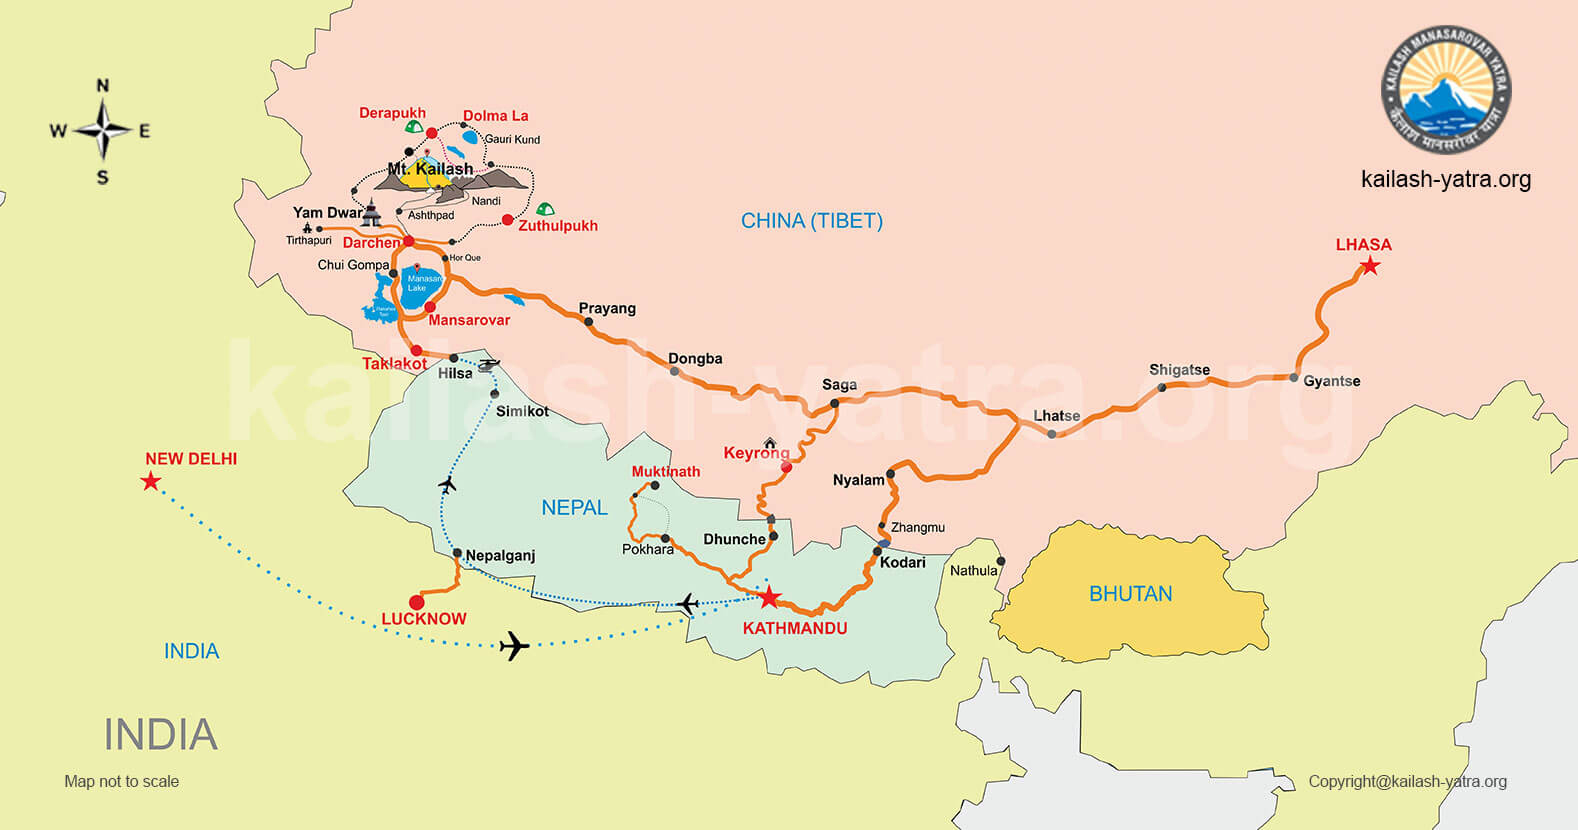 Another map of Mount Kailash. Click on image to enlarge.